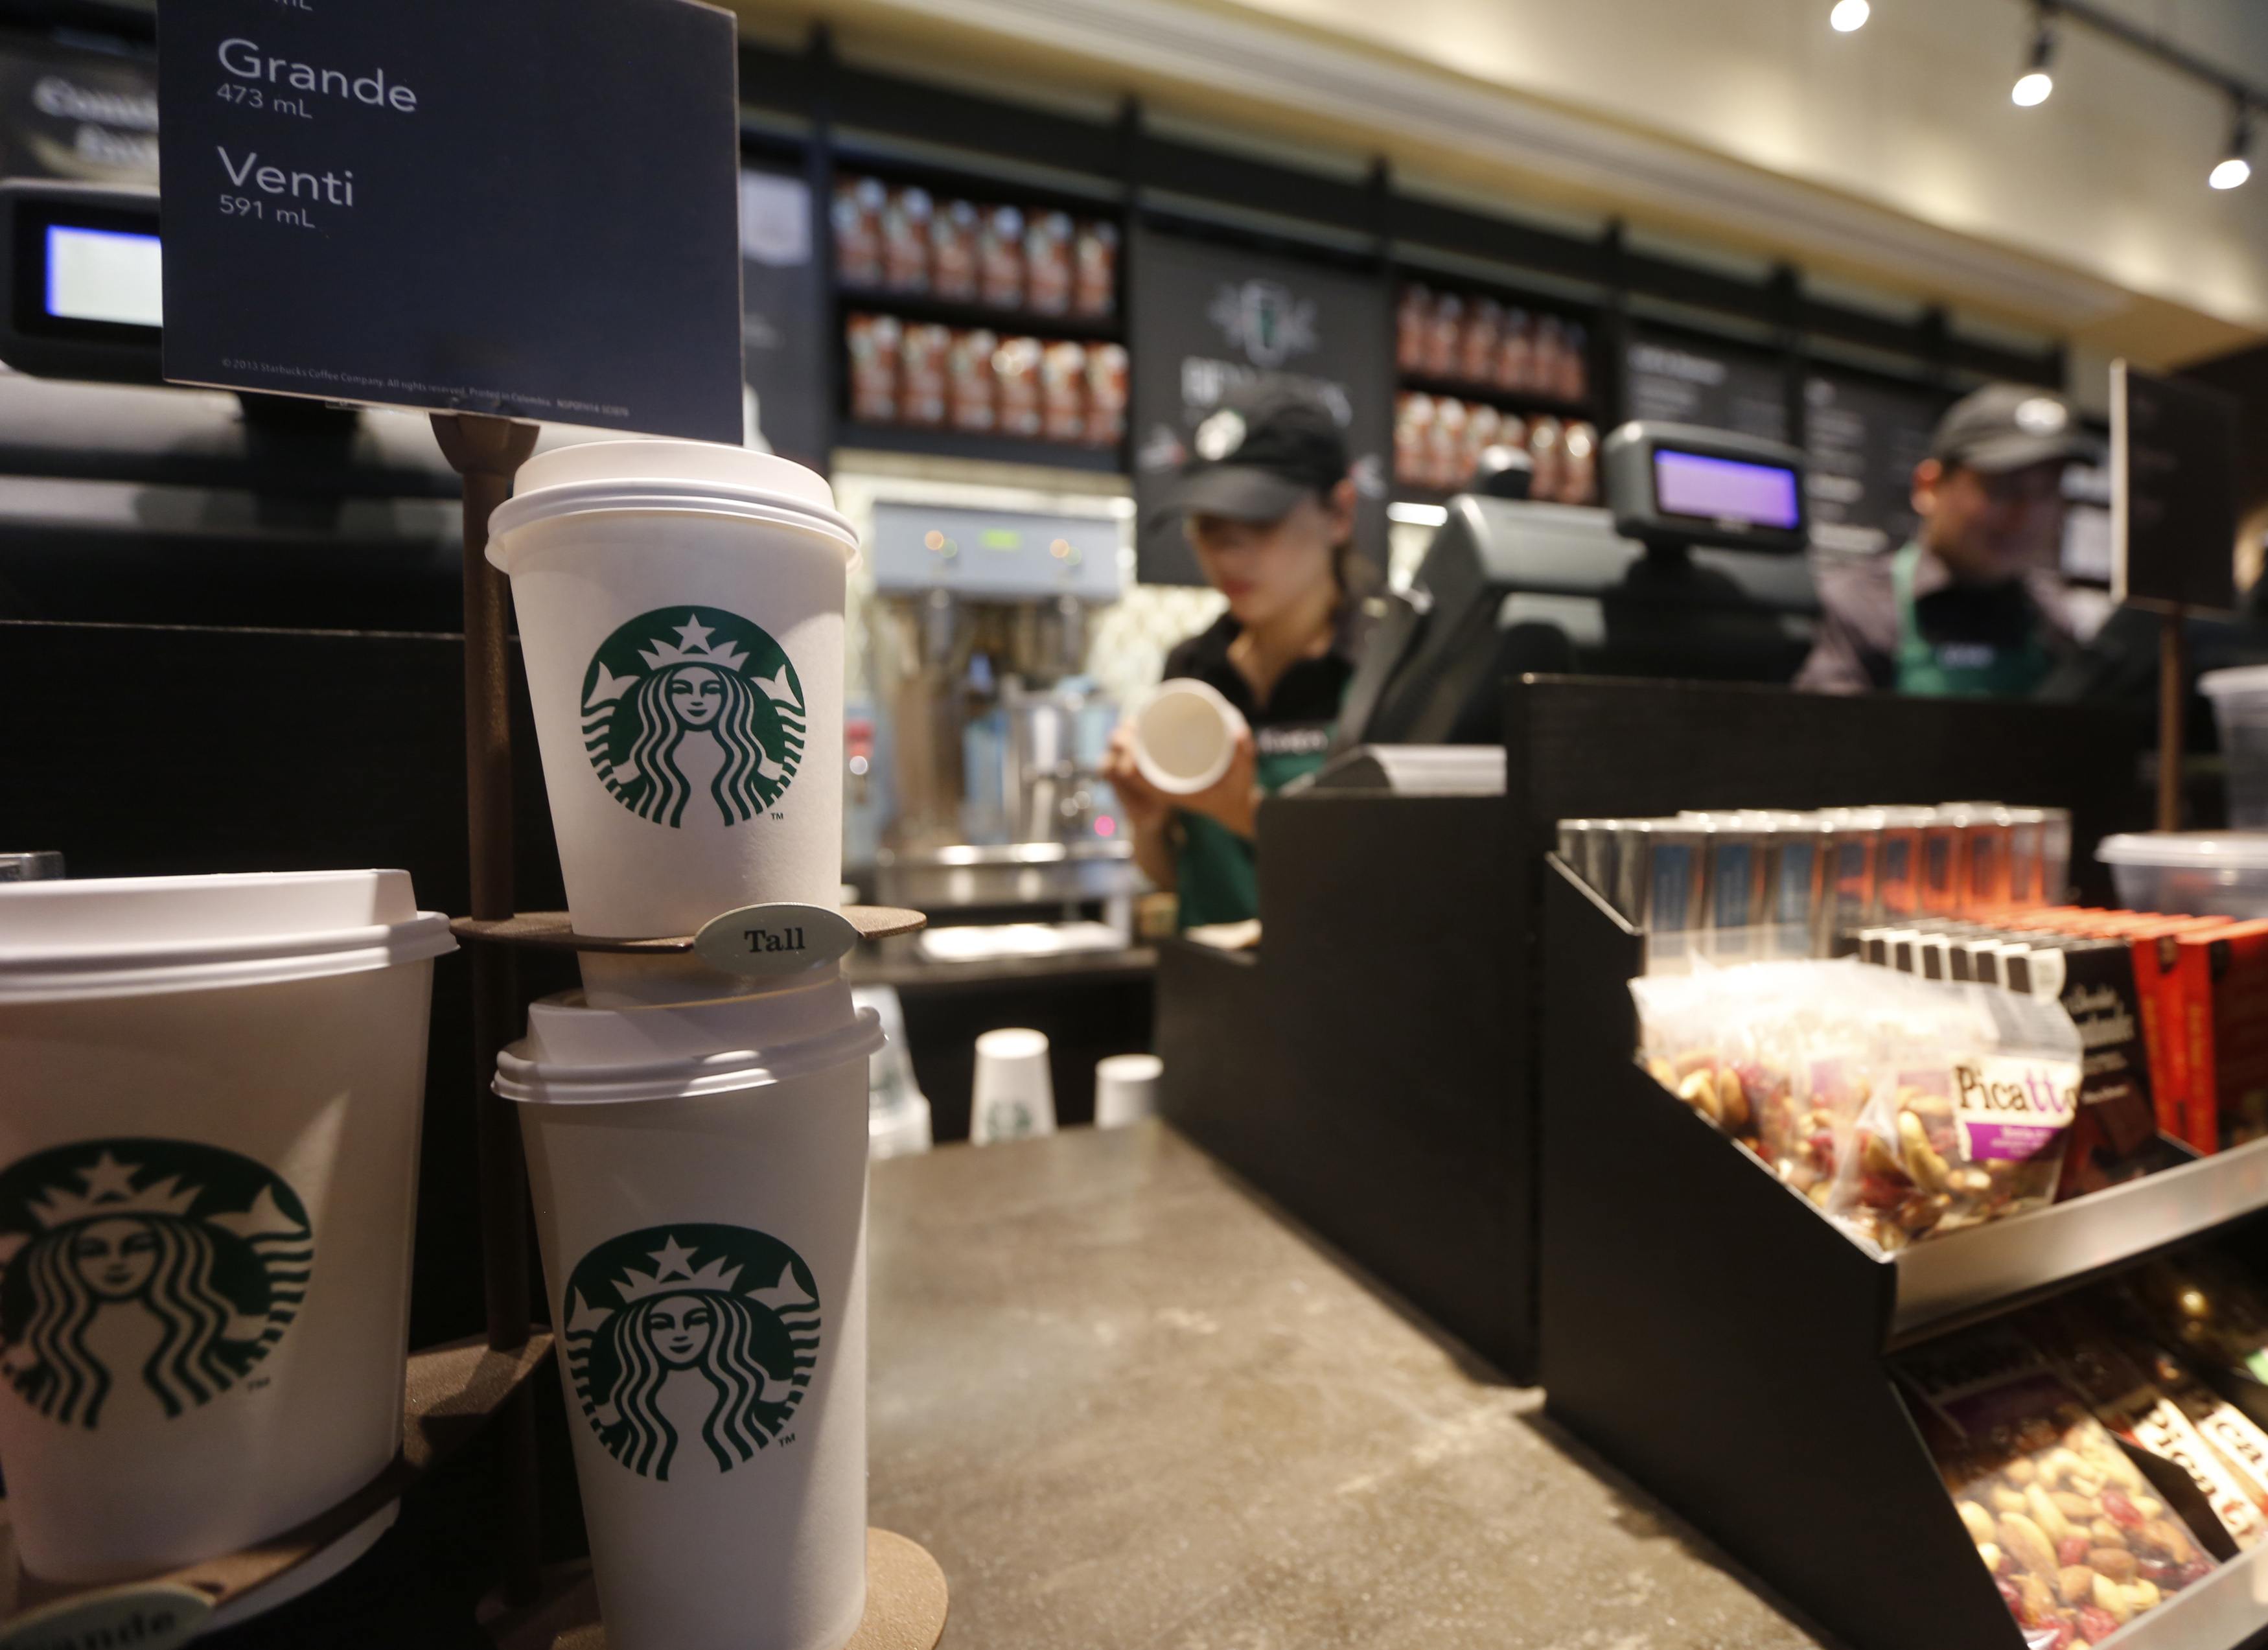 Paper cups of different sizes are seen on display at Starbuck's first Colombian store at 93 park in Bogota July 16, 2014.